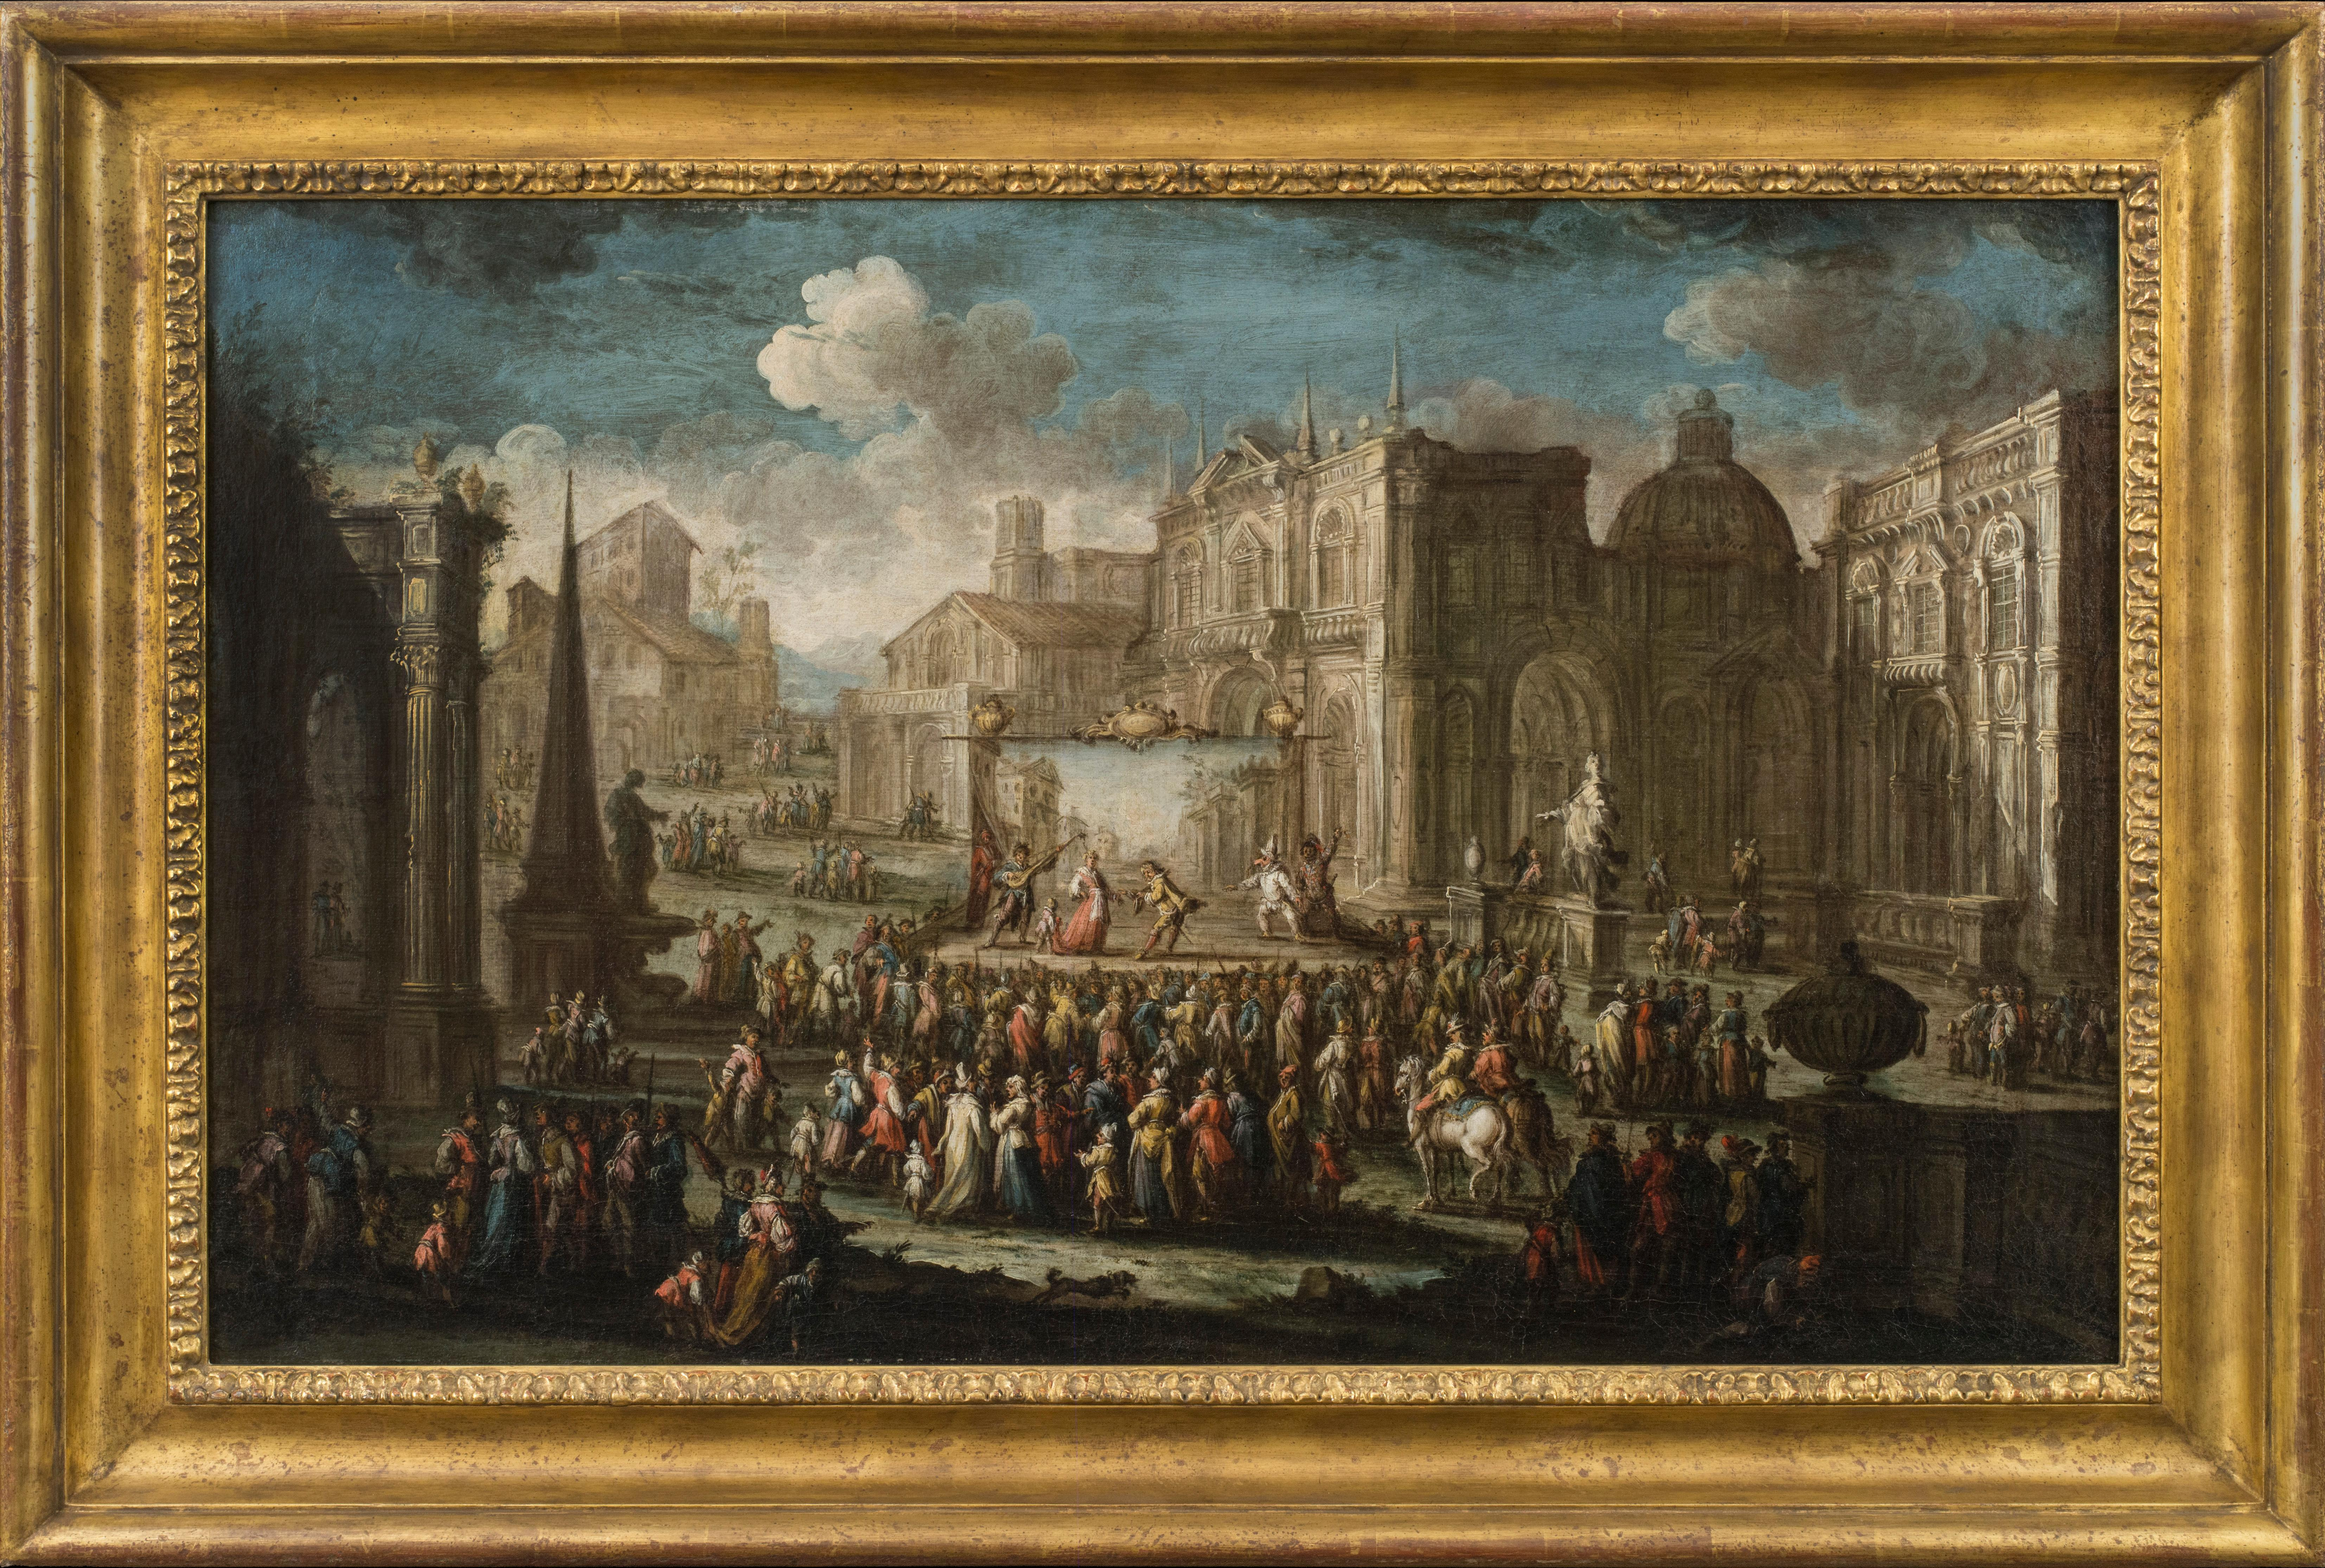 A Performance from the Commedia dell'Arte Set in a Piazza, 1725–1730, by Florentine father and son Gherardo Poli and Giuseppe Poli, offered by Robert Simon Fine Art